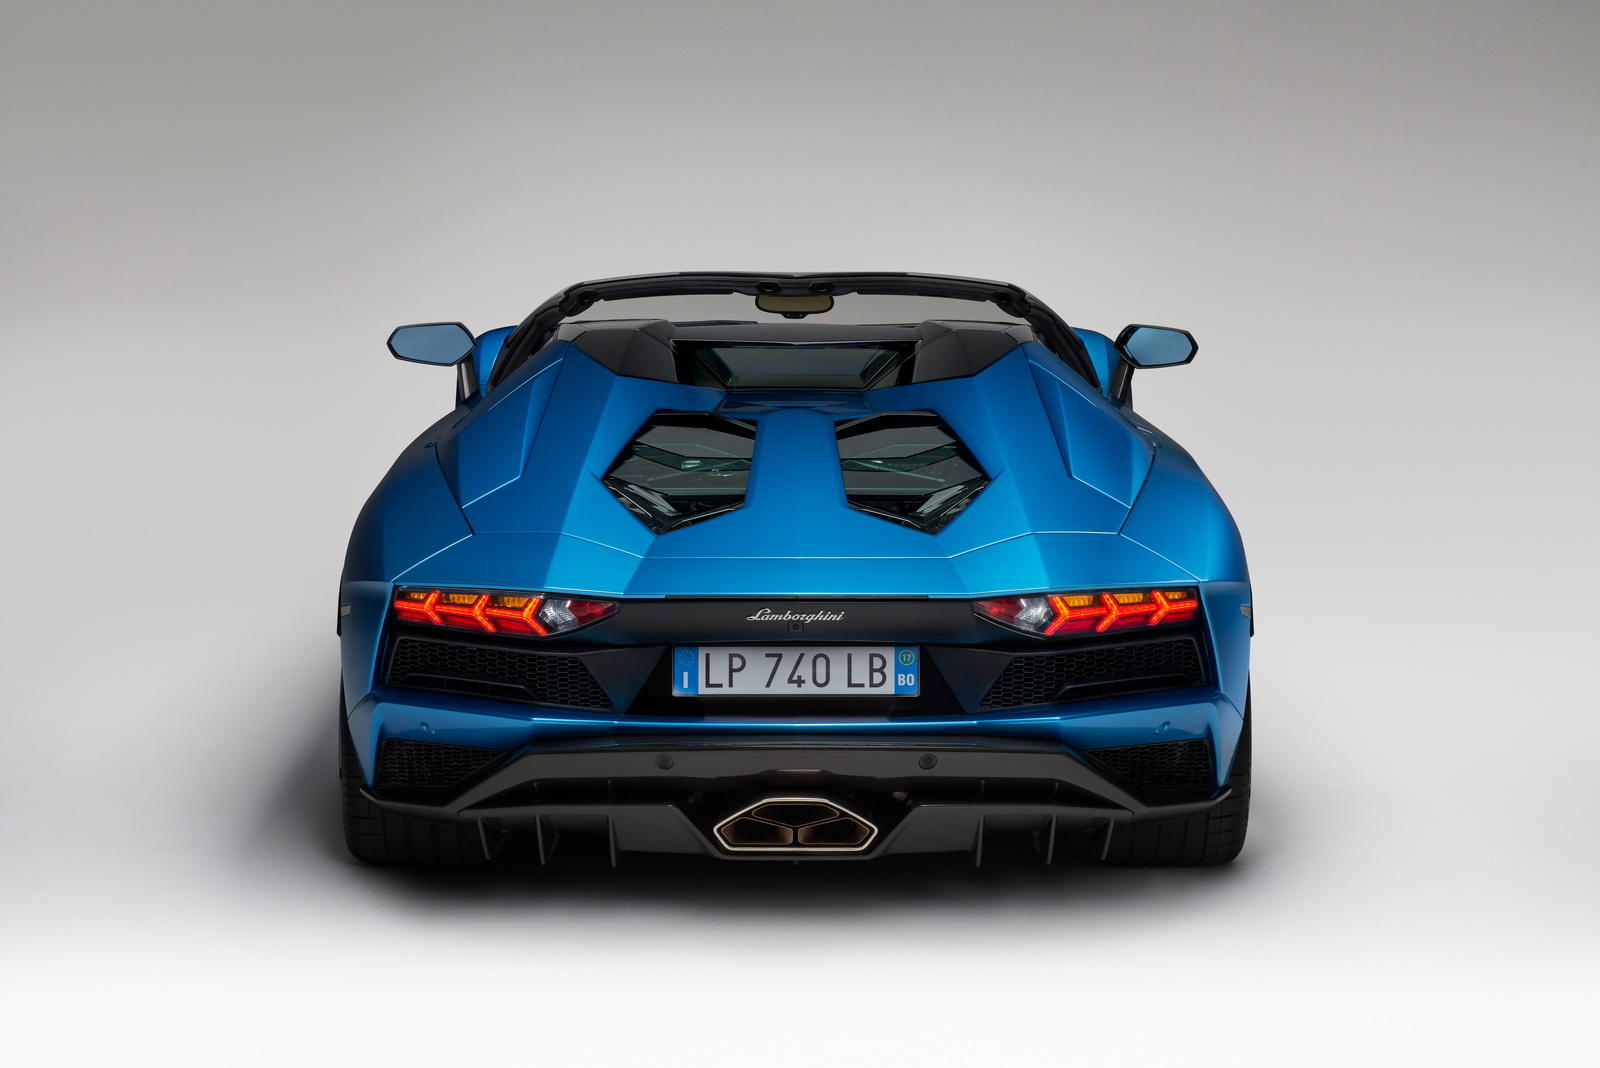 First Lamborghini Ever Made >> Lamborghini Reveals the 2018 Aventador S Roadster Before its Official Debut